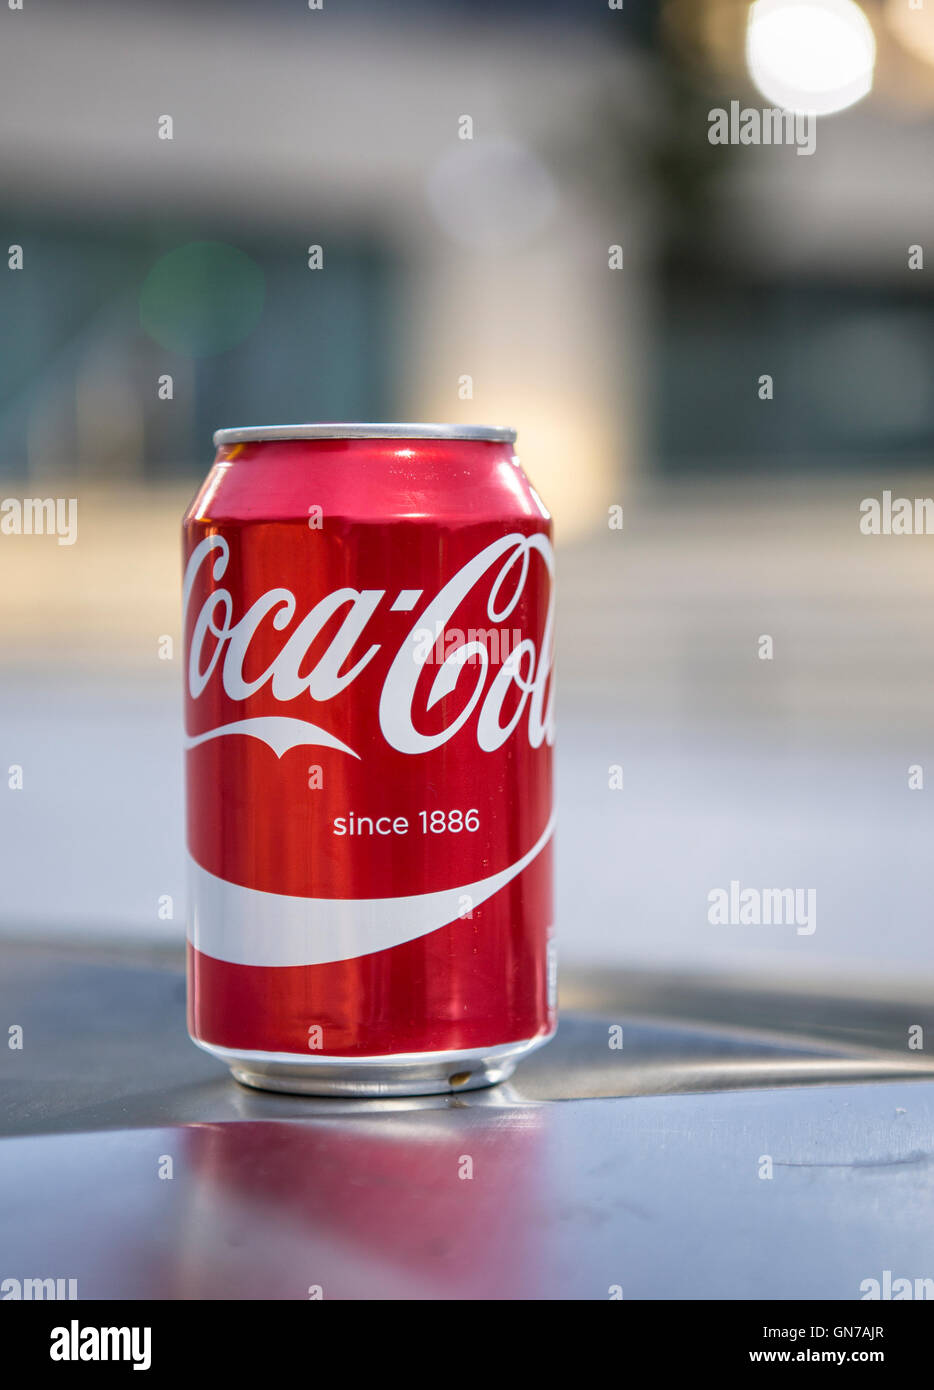 Discarded coke can - Stock Image